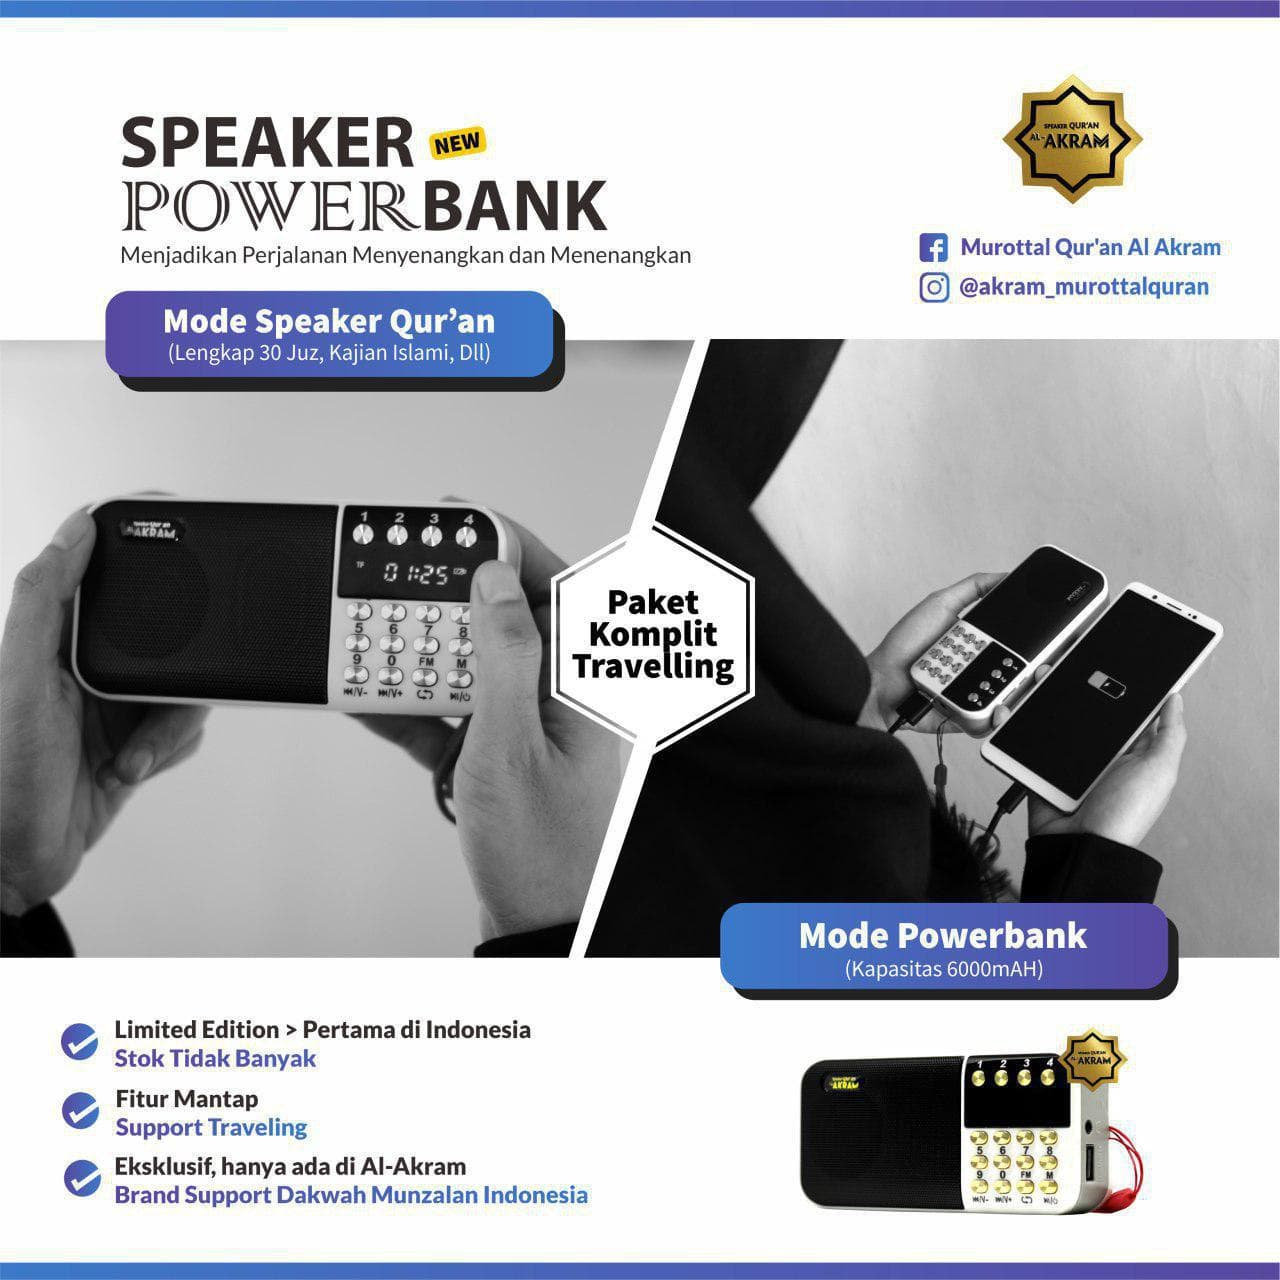 mode-speaker-quran-al-akram-powerbank